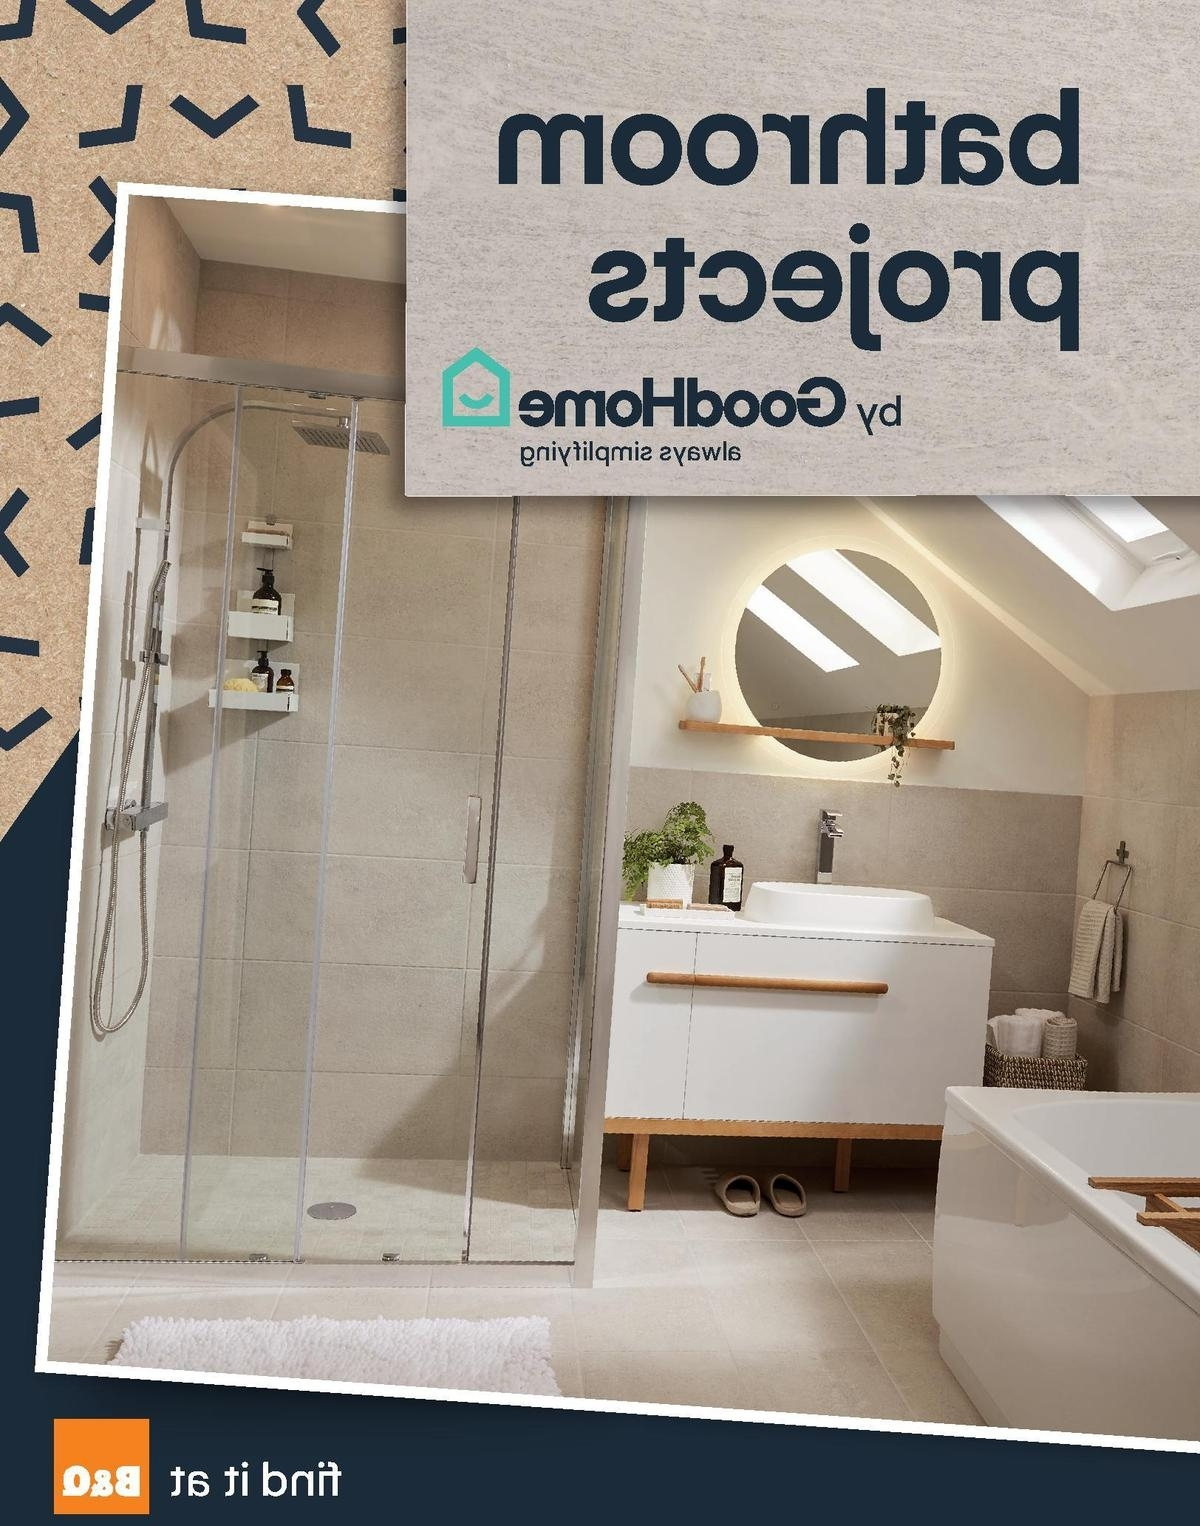 B&Q Bathroom Projects Offers & Special Buys For September 1 10+ B&Q Bathroom Design Service Ideas